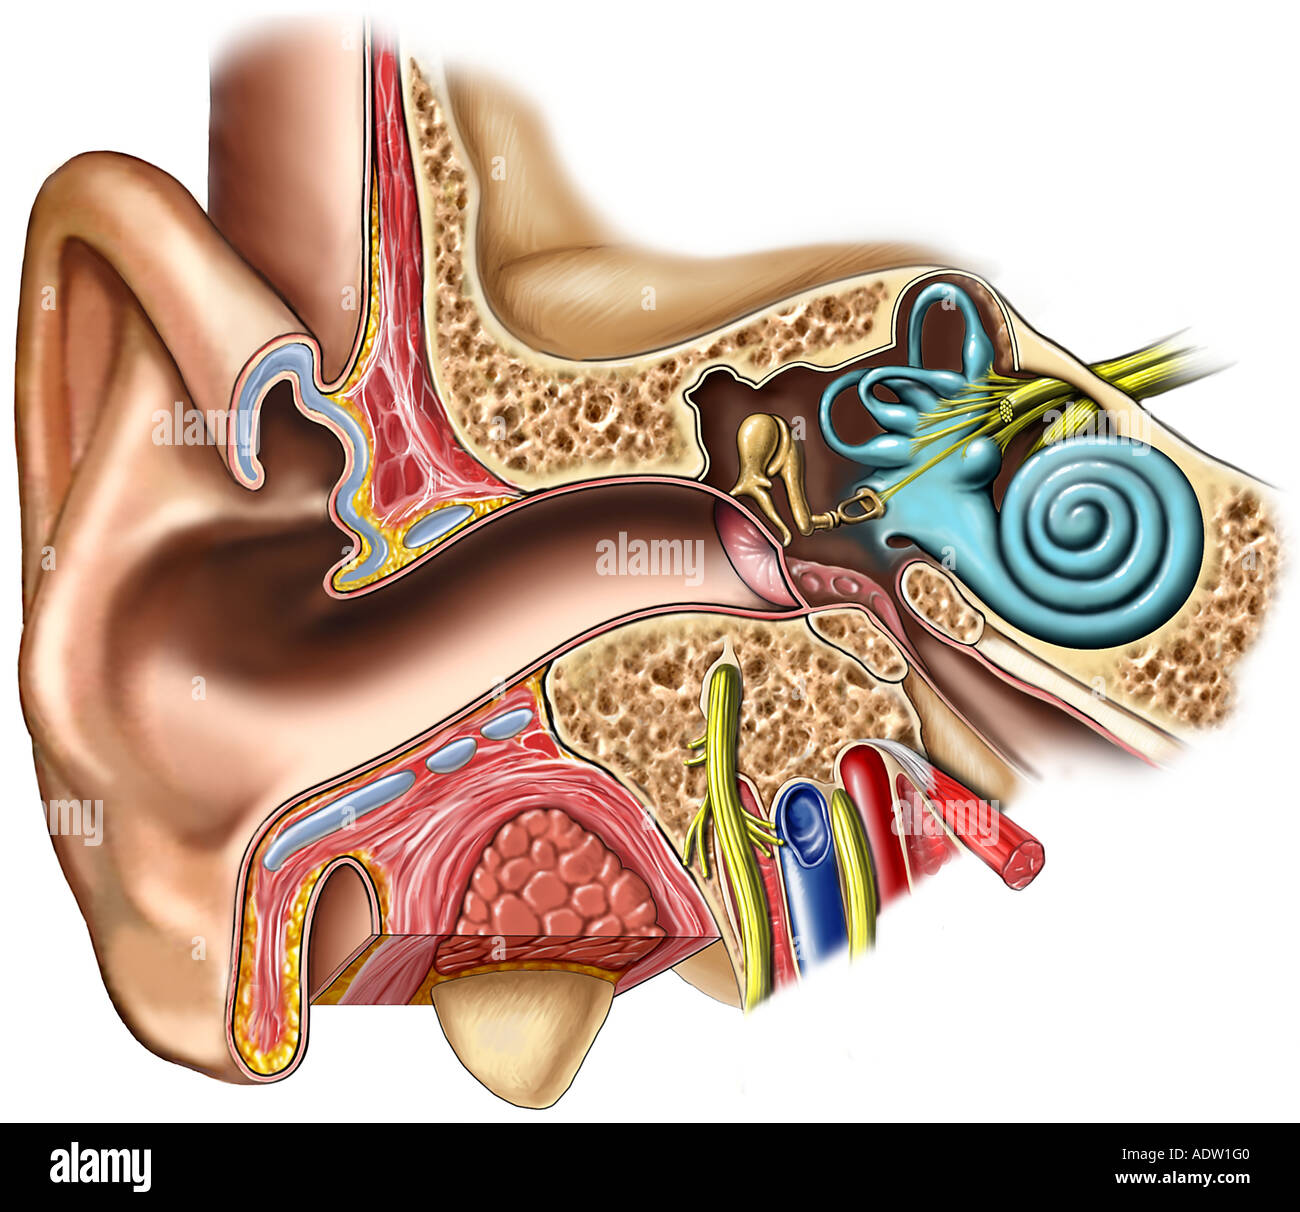 Anatomy Of The Right Ear Cross Section Stock Photo